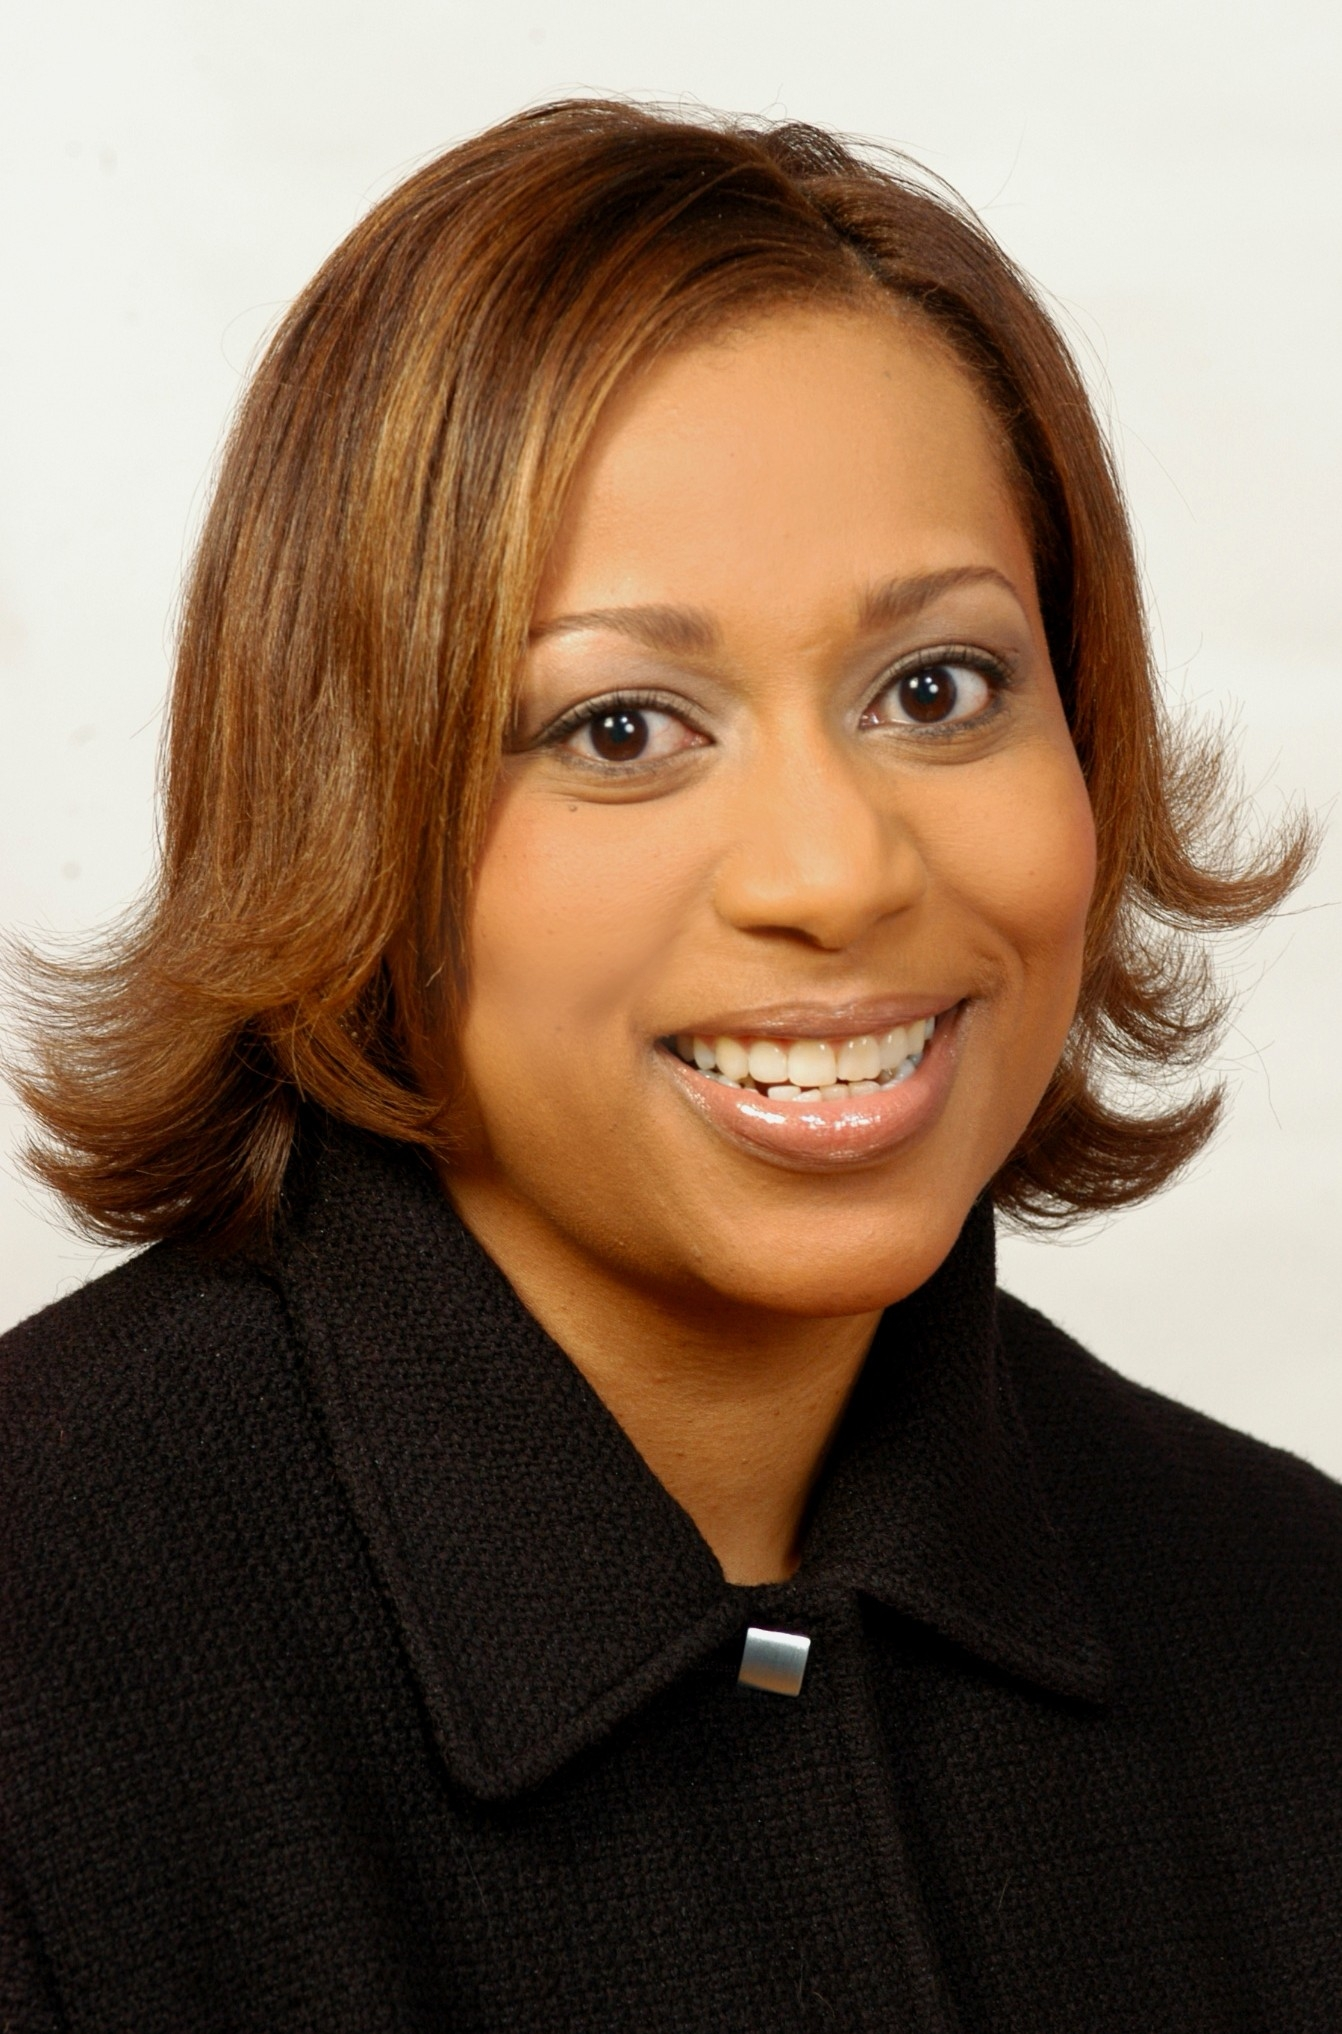 Judge Karen Simmons